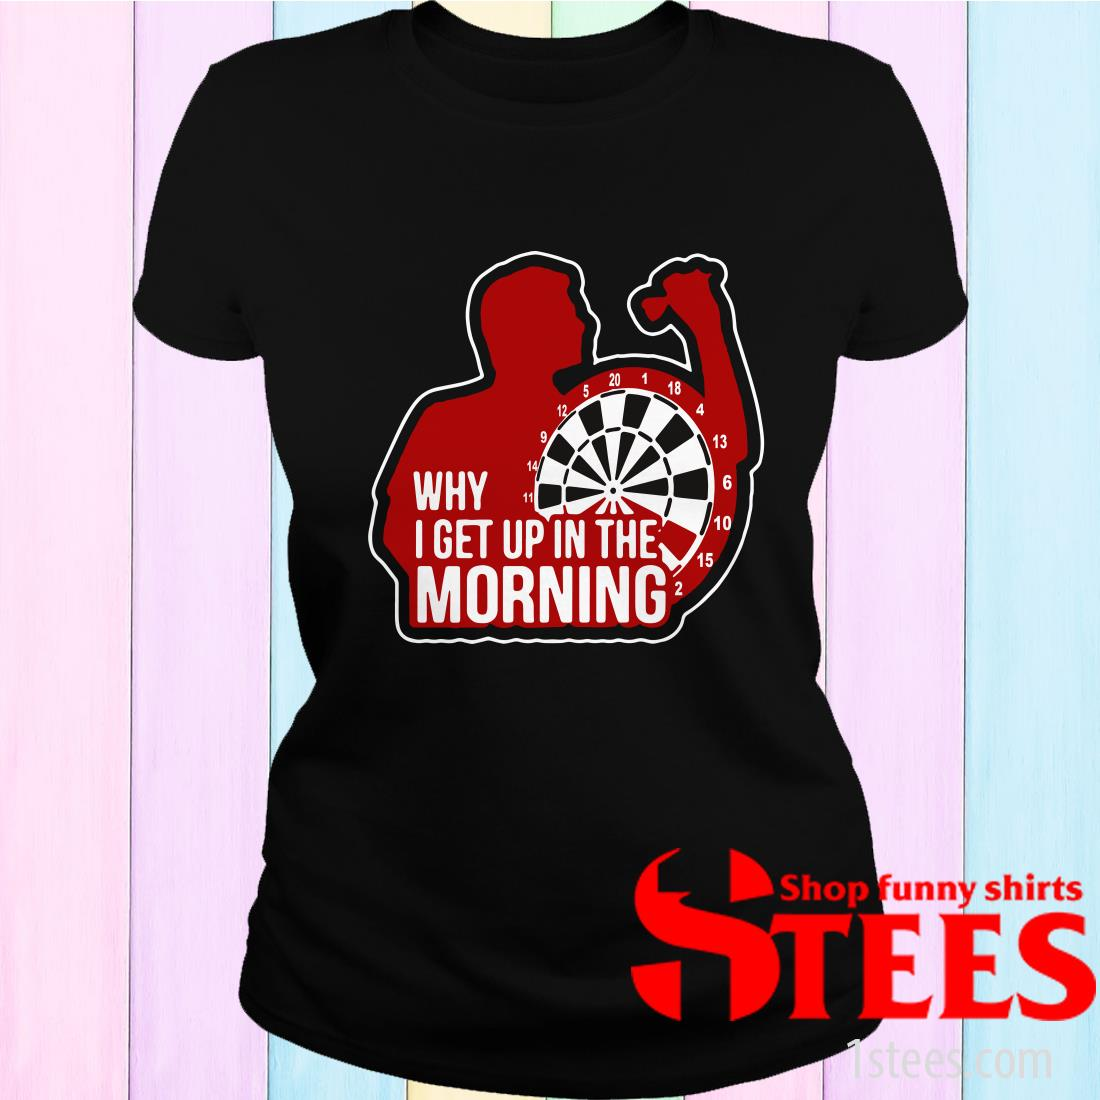 Darts Why I Get Up In The Morning Women's T-Shirt